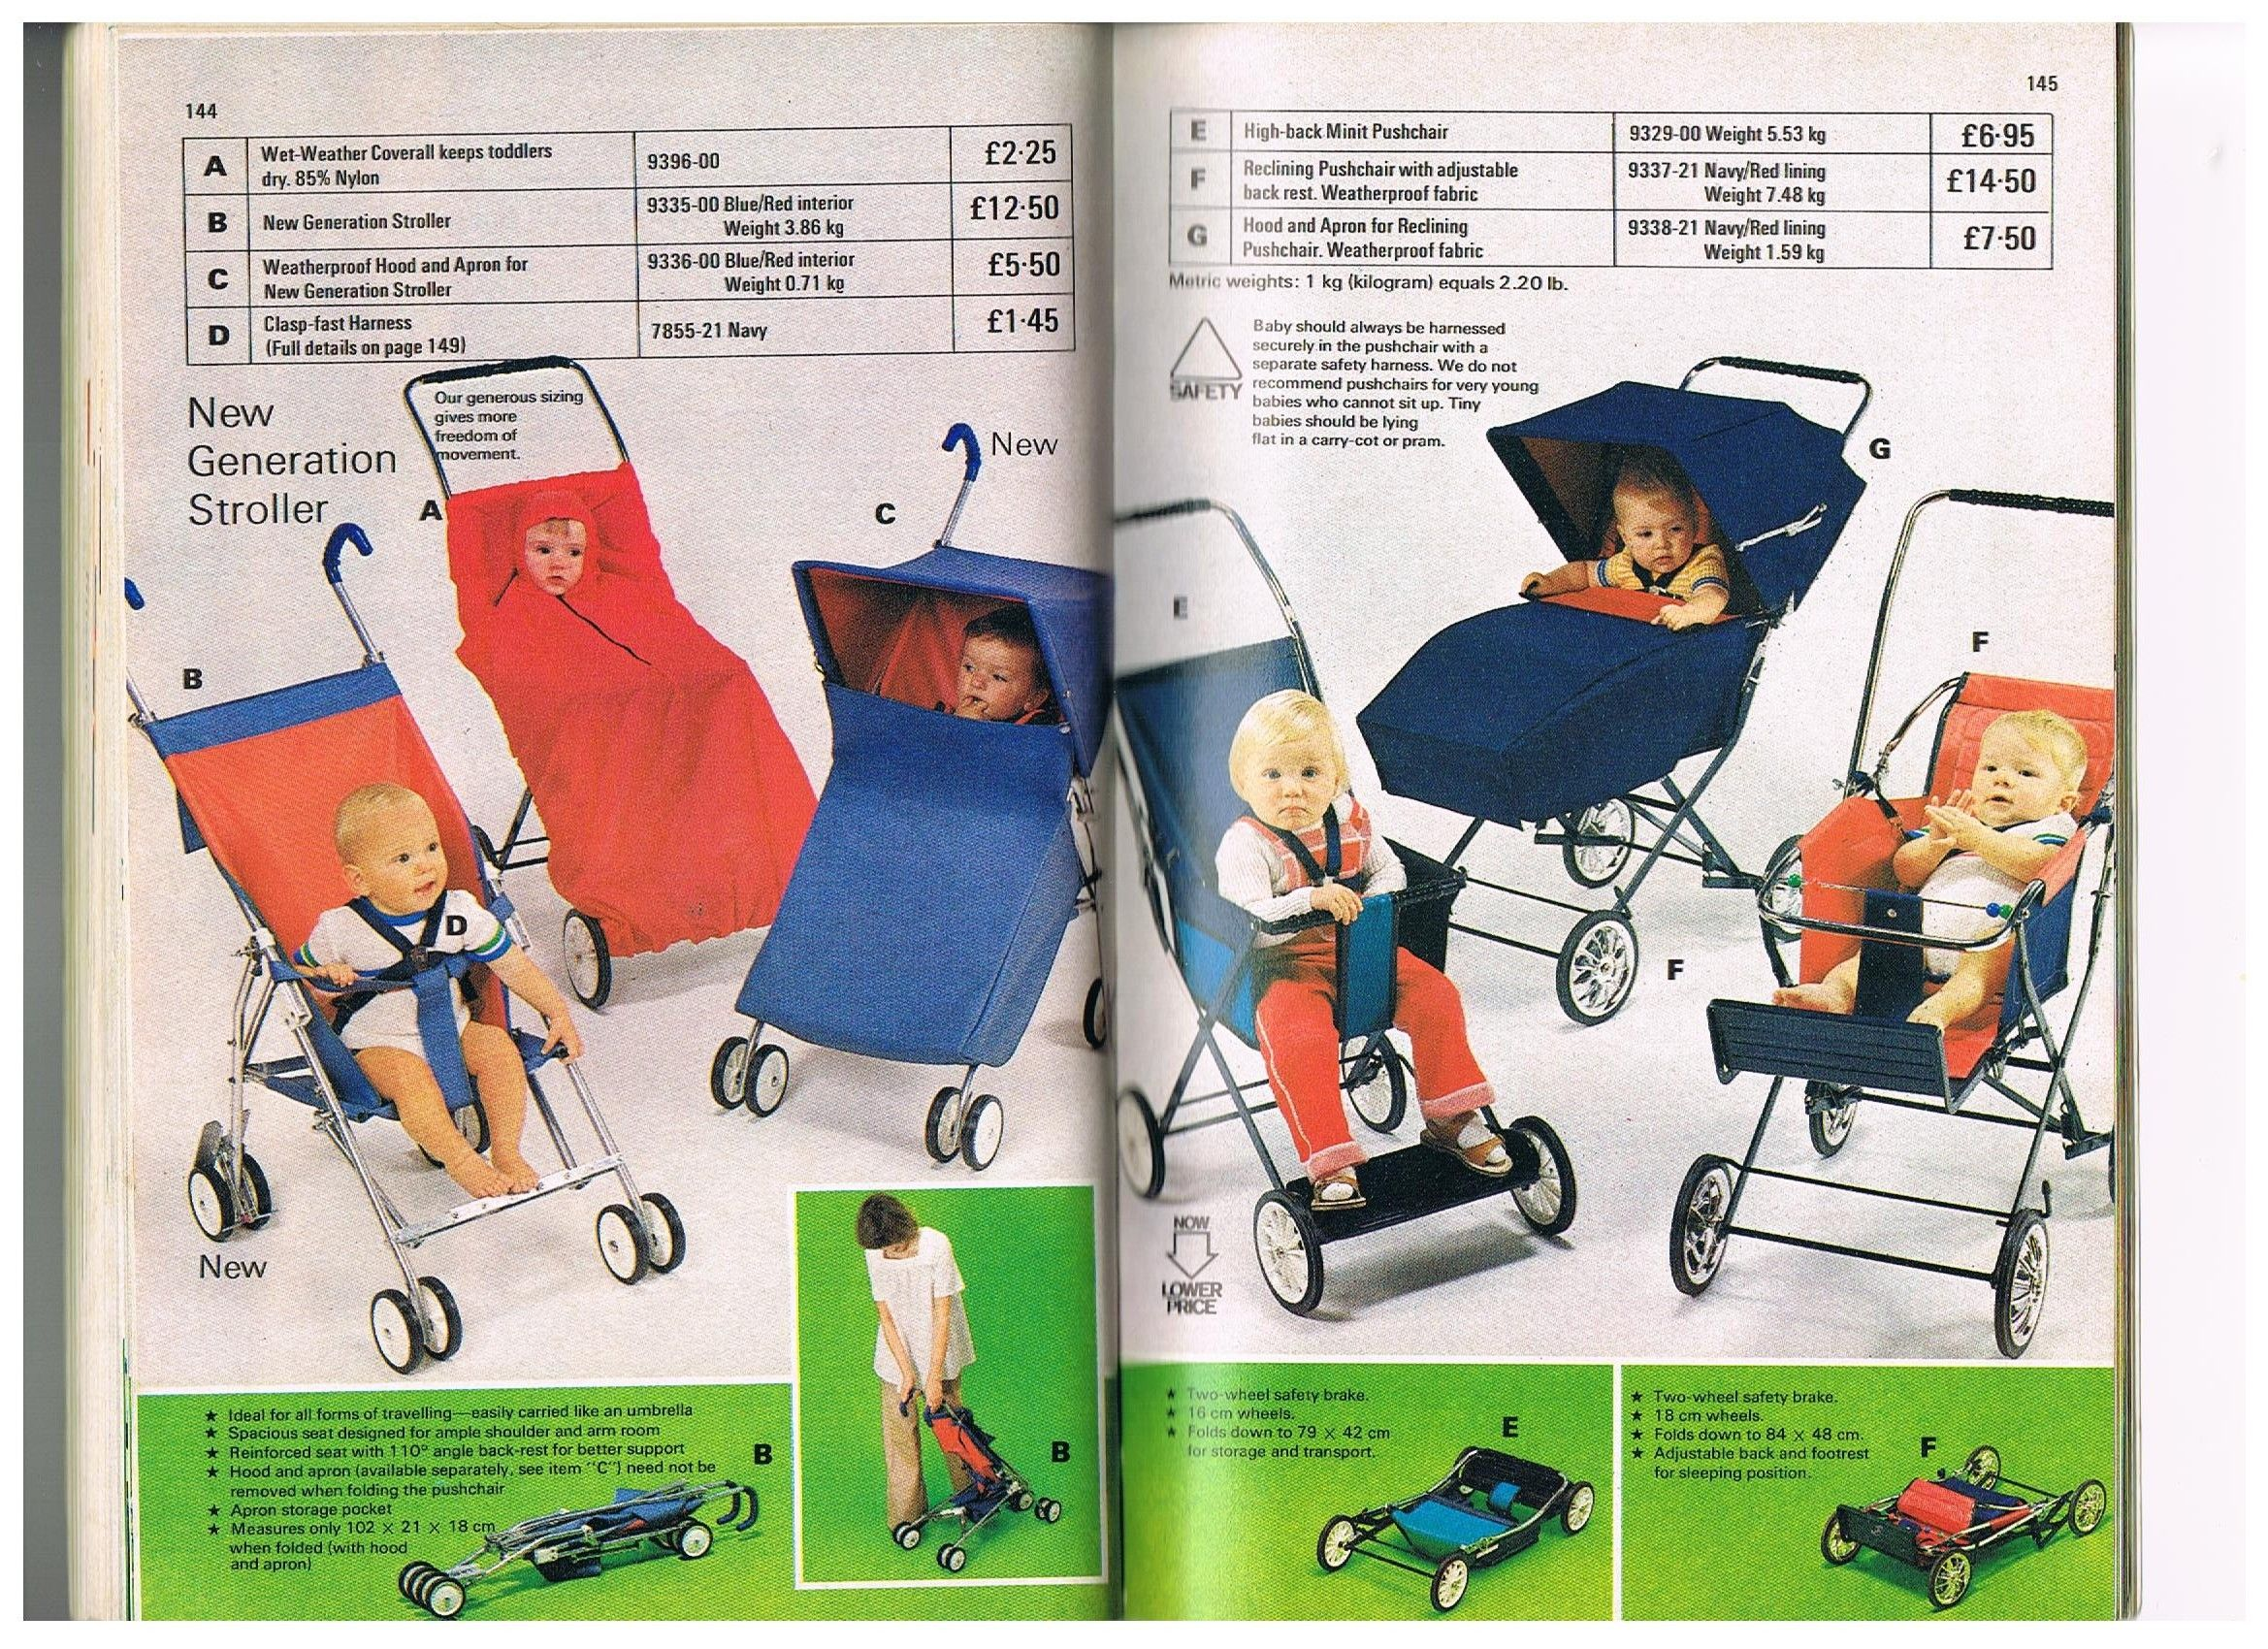 I collect vintage Mothercare clothes. This is a scan from